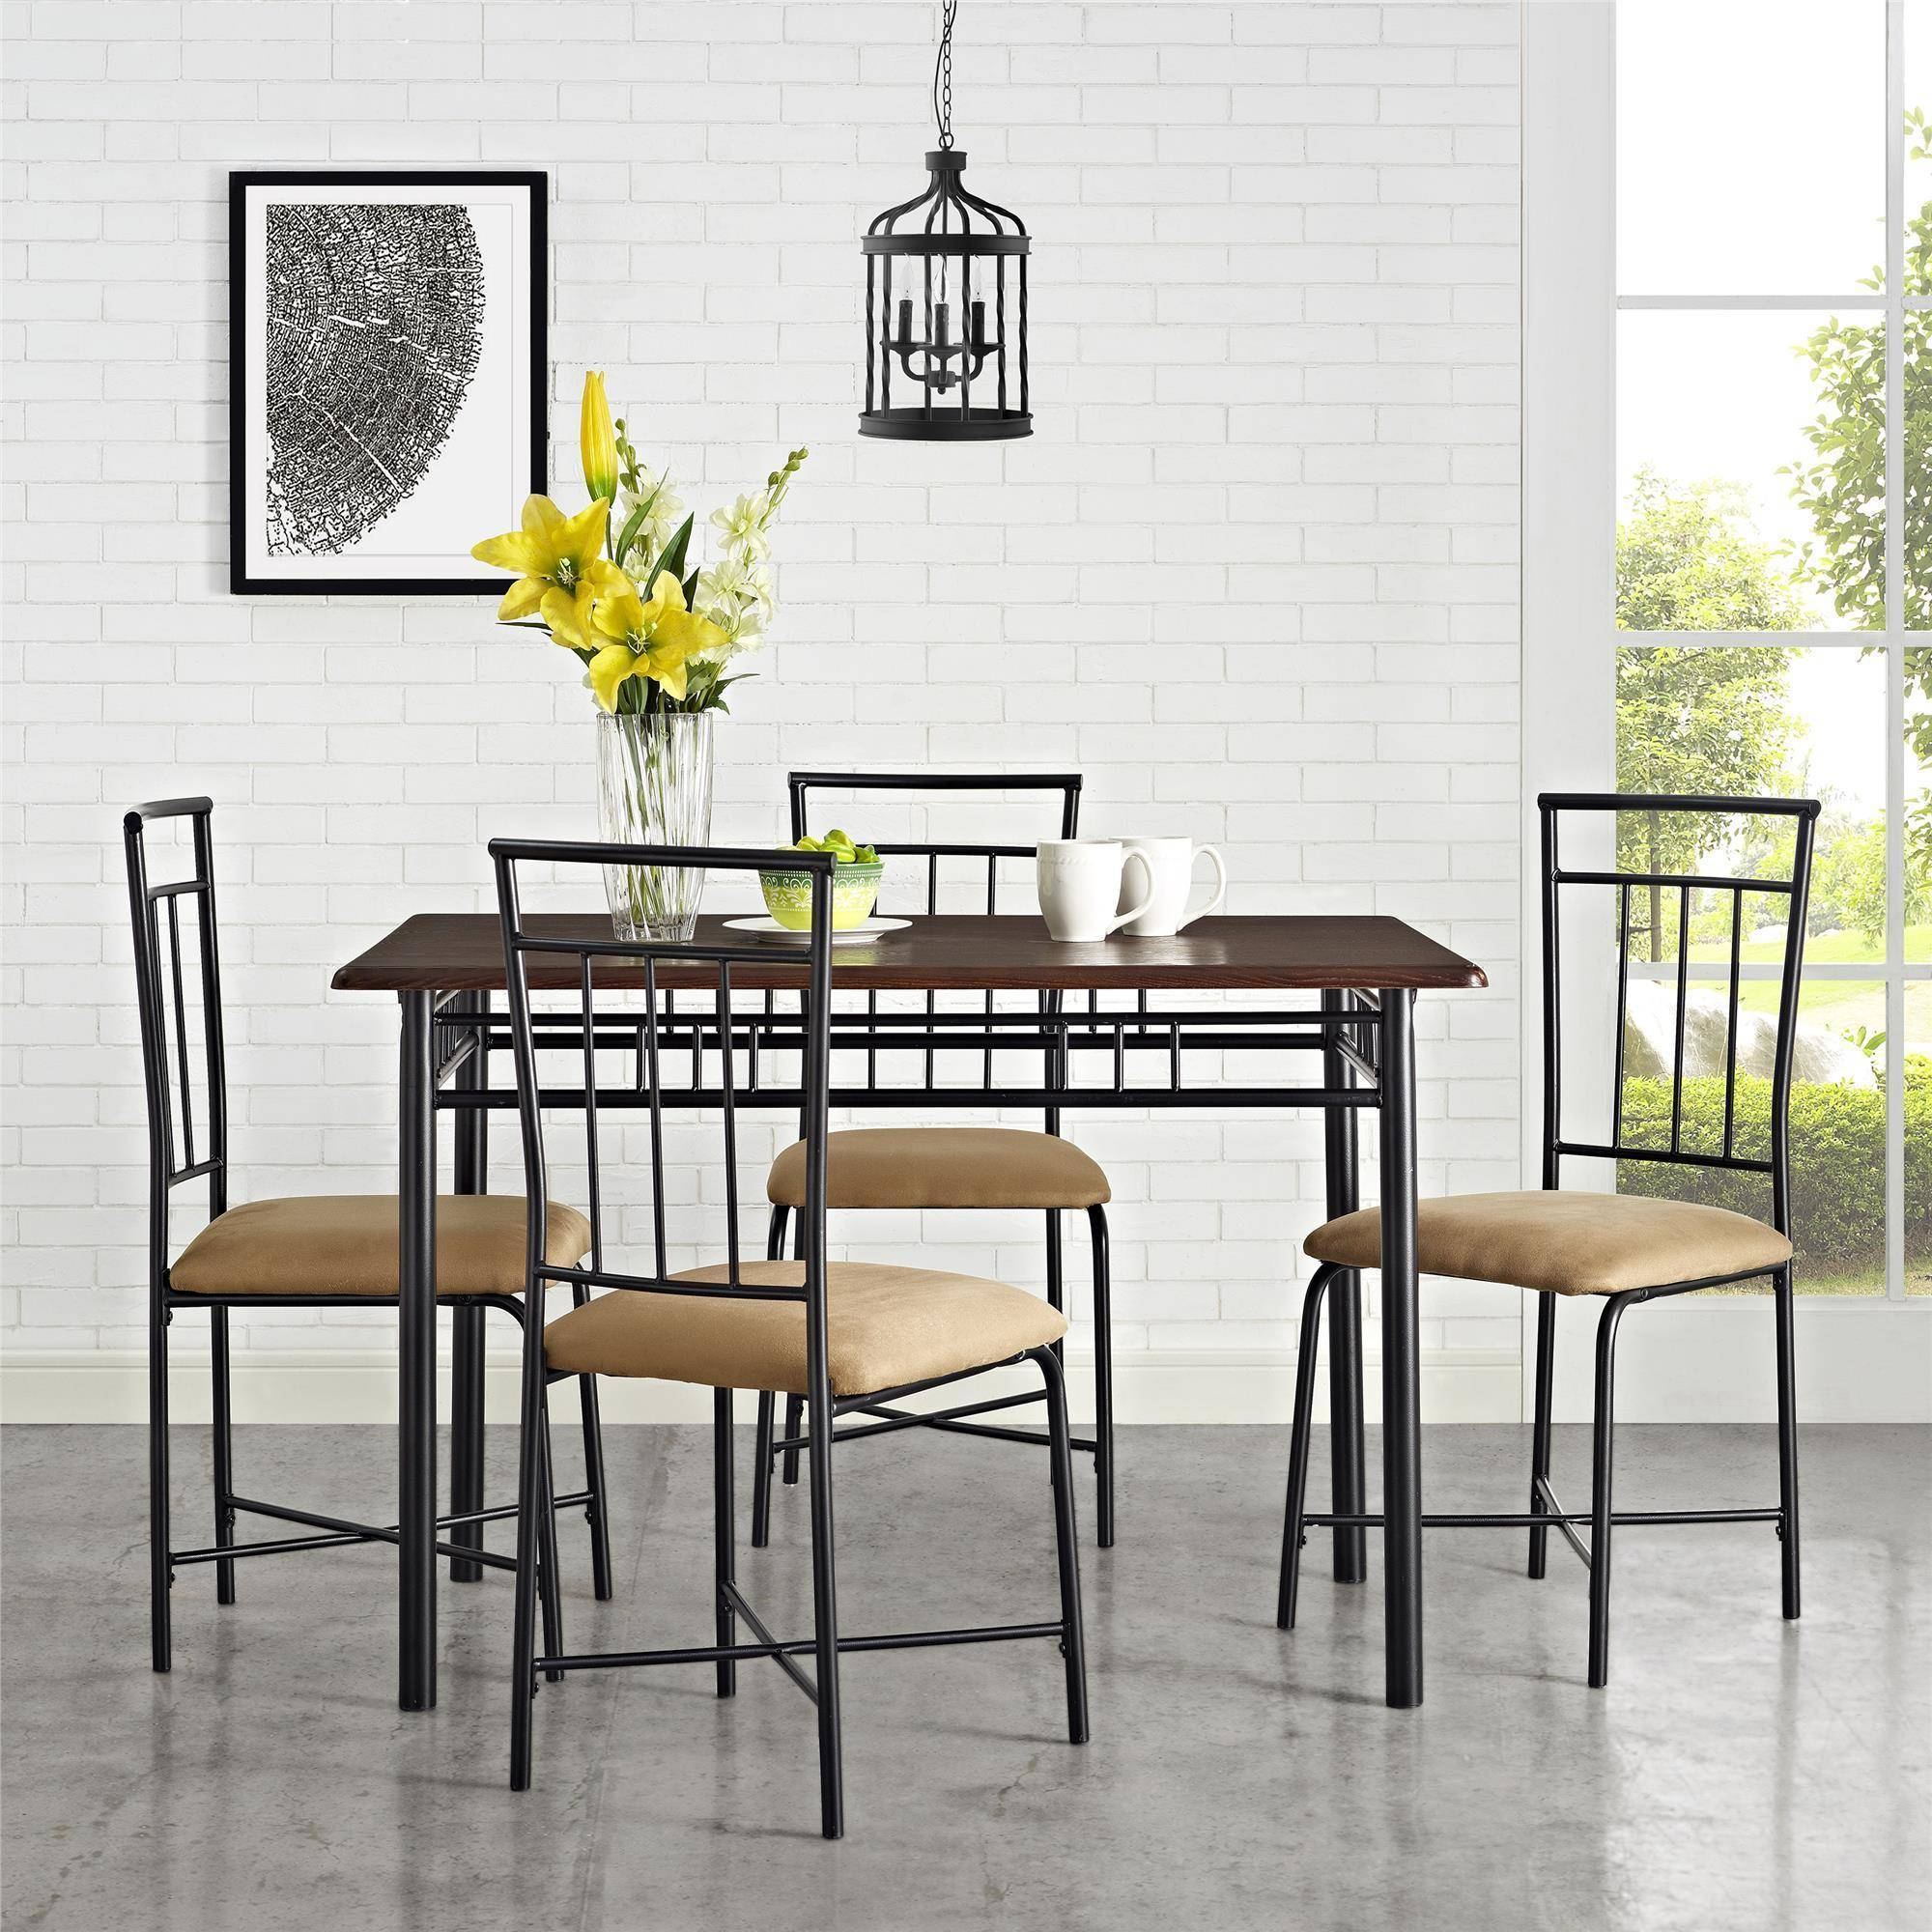 Mainstays 5 Piece Dining Set, Multiple Colors Pertaining To Most Popular West Hill Family Table 3 Piece Dining Sets (View 7 of 20)